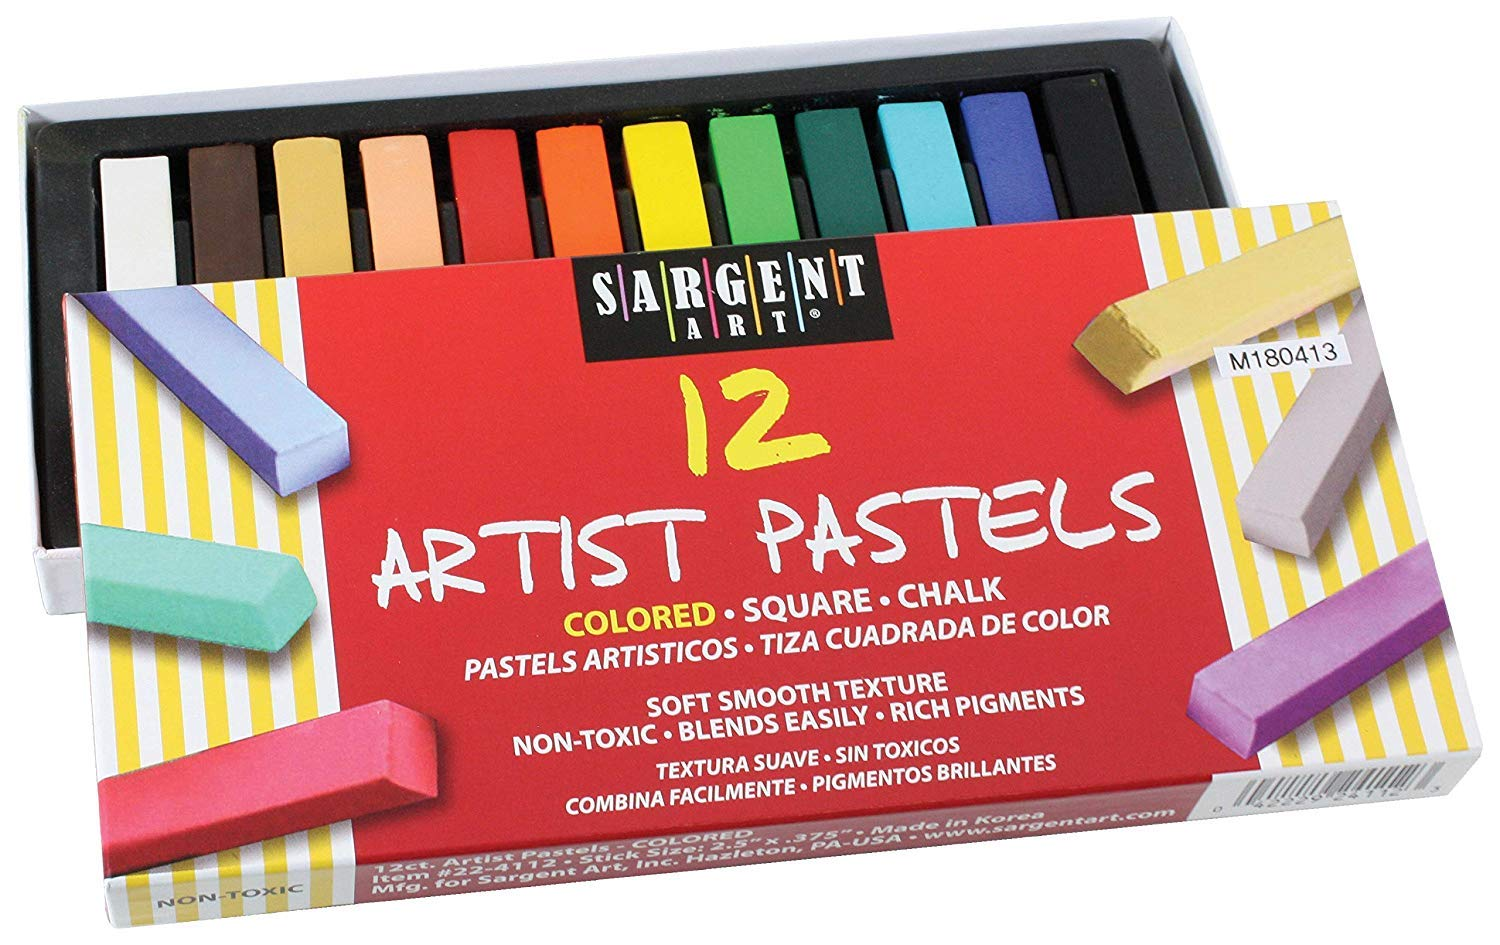 Sargent Art 22-4112 Colored Square Chalk Pastels, 12 Count (3 Pack) by Sargent Art